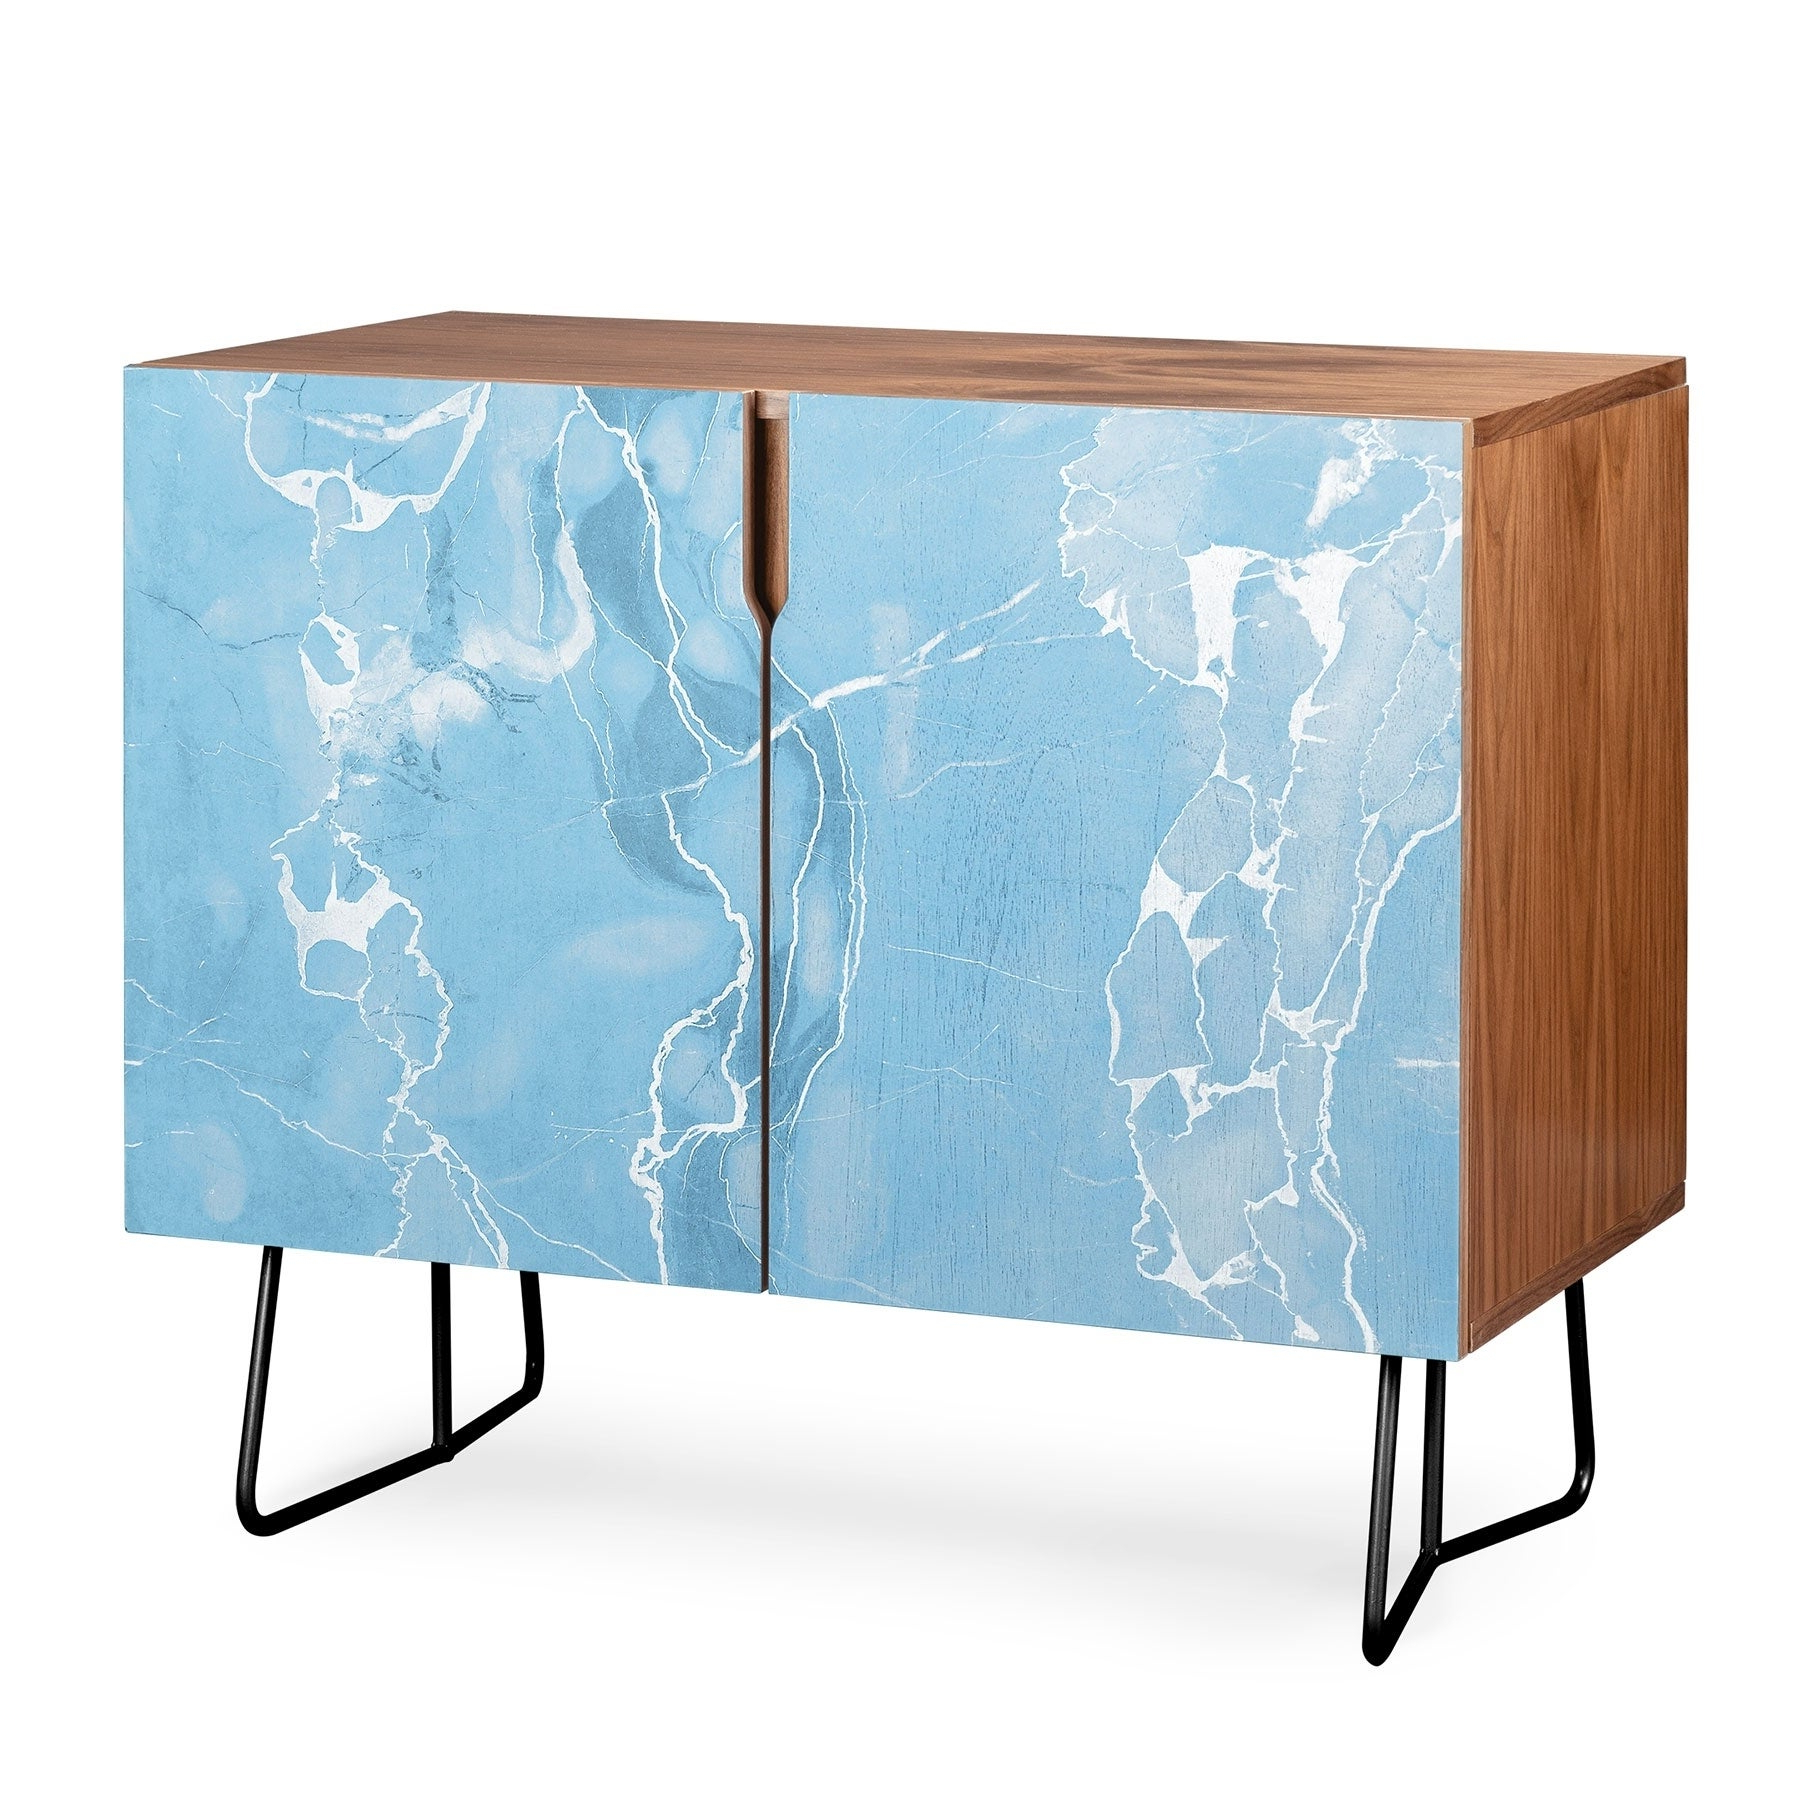 Deny Designs Blue Sky Marble Credenza (Birch Or Walnut, 2 Leg Options) For Ocean Marble Credenzas (View 3 of 20)